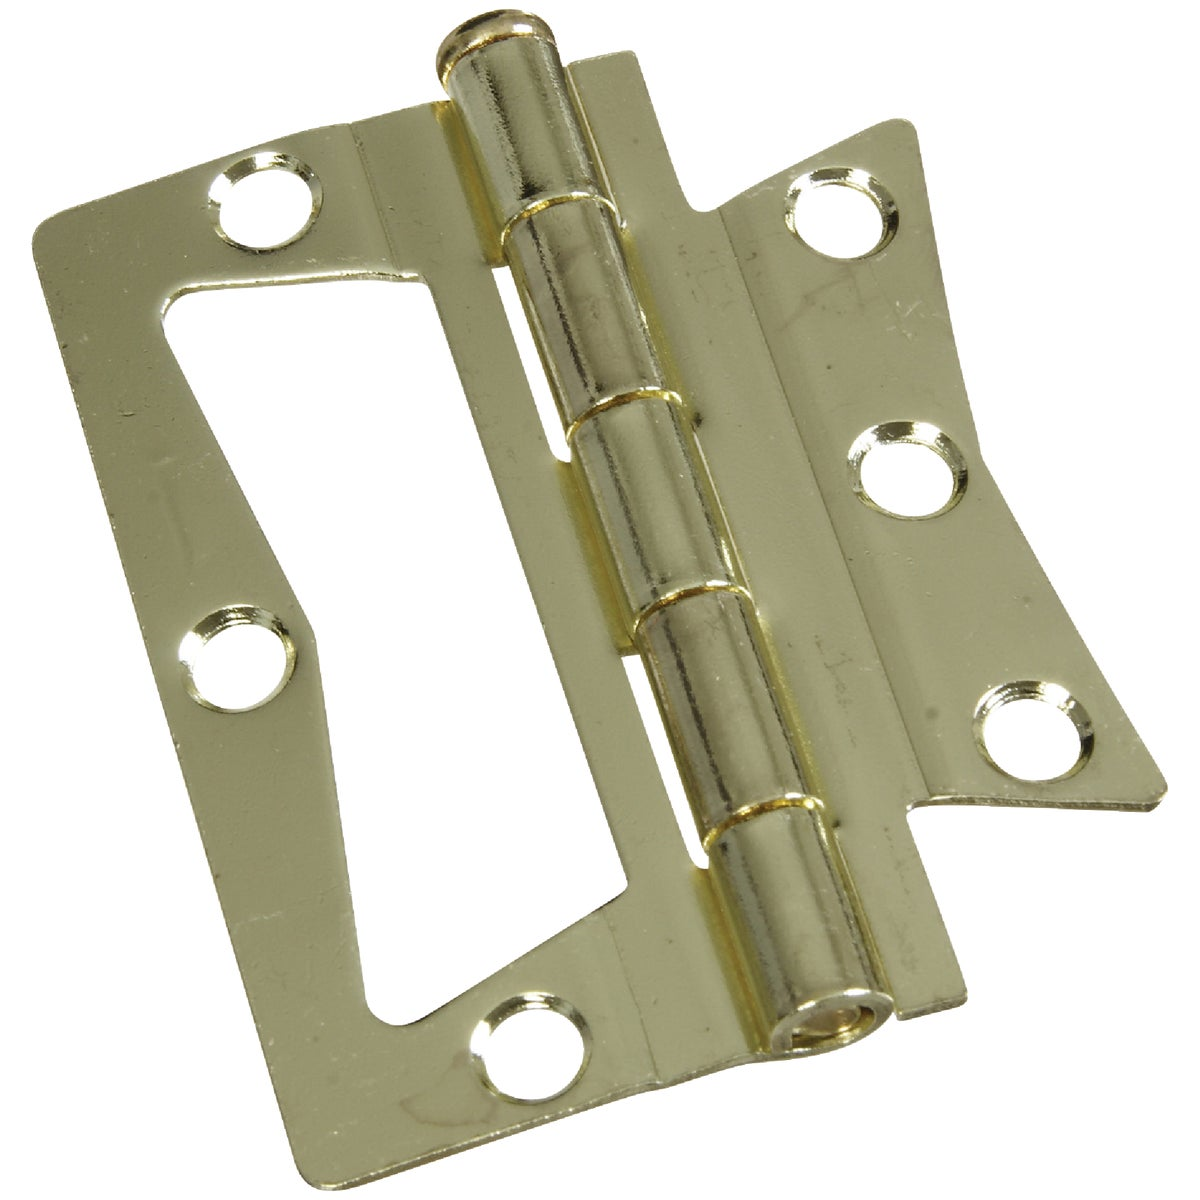 3X3 NONMORTISE HINGE - N244780 by National Mfg Co